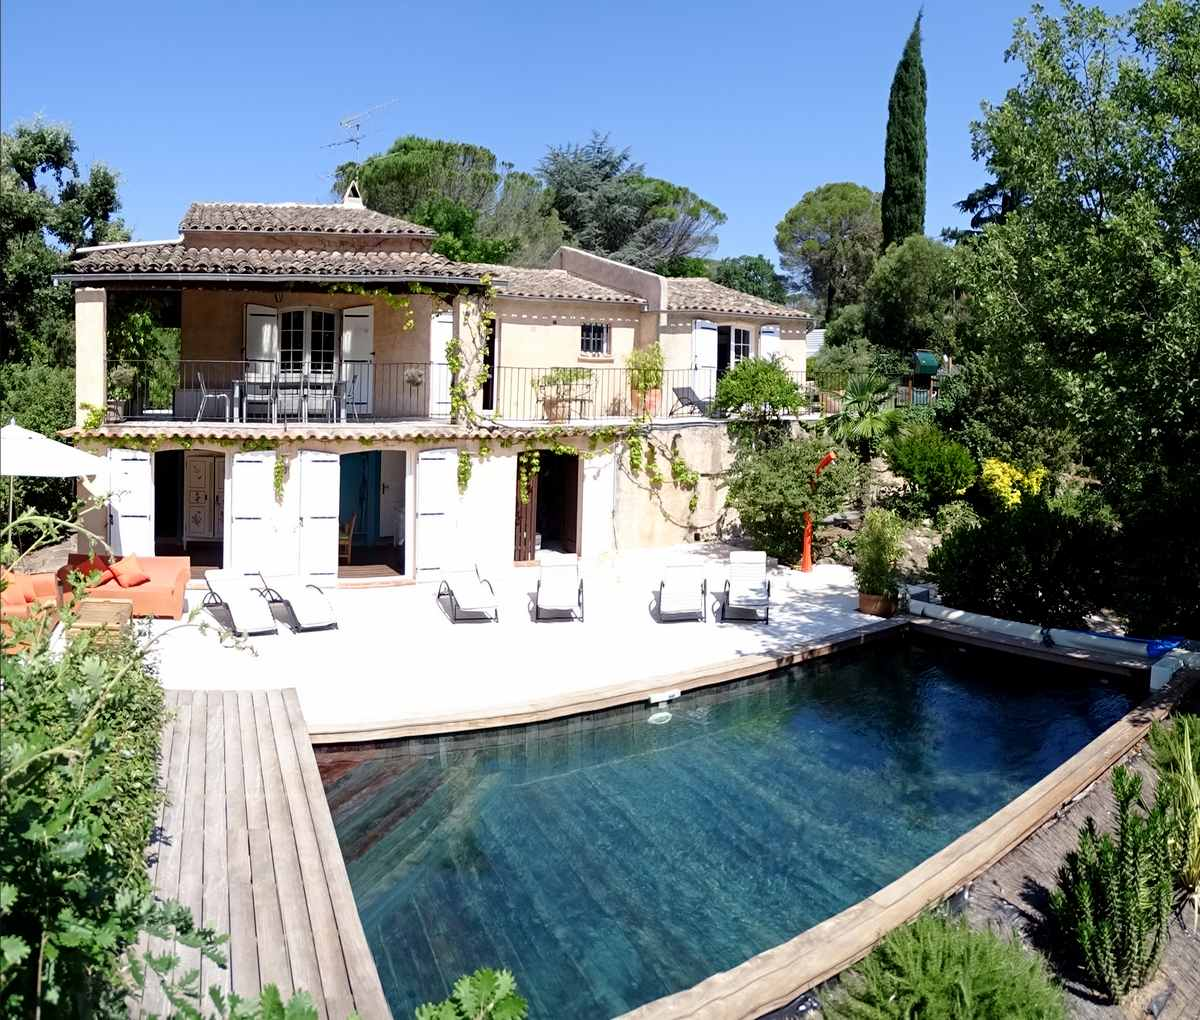 Location bord de mer saint raphael 83 var location villa for Photo maison avec piscine